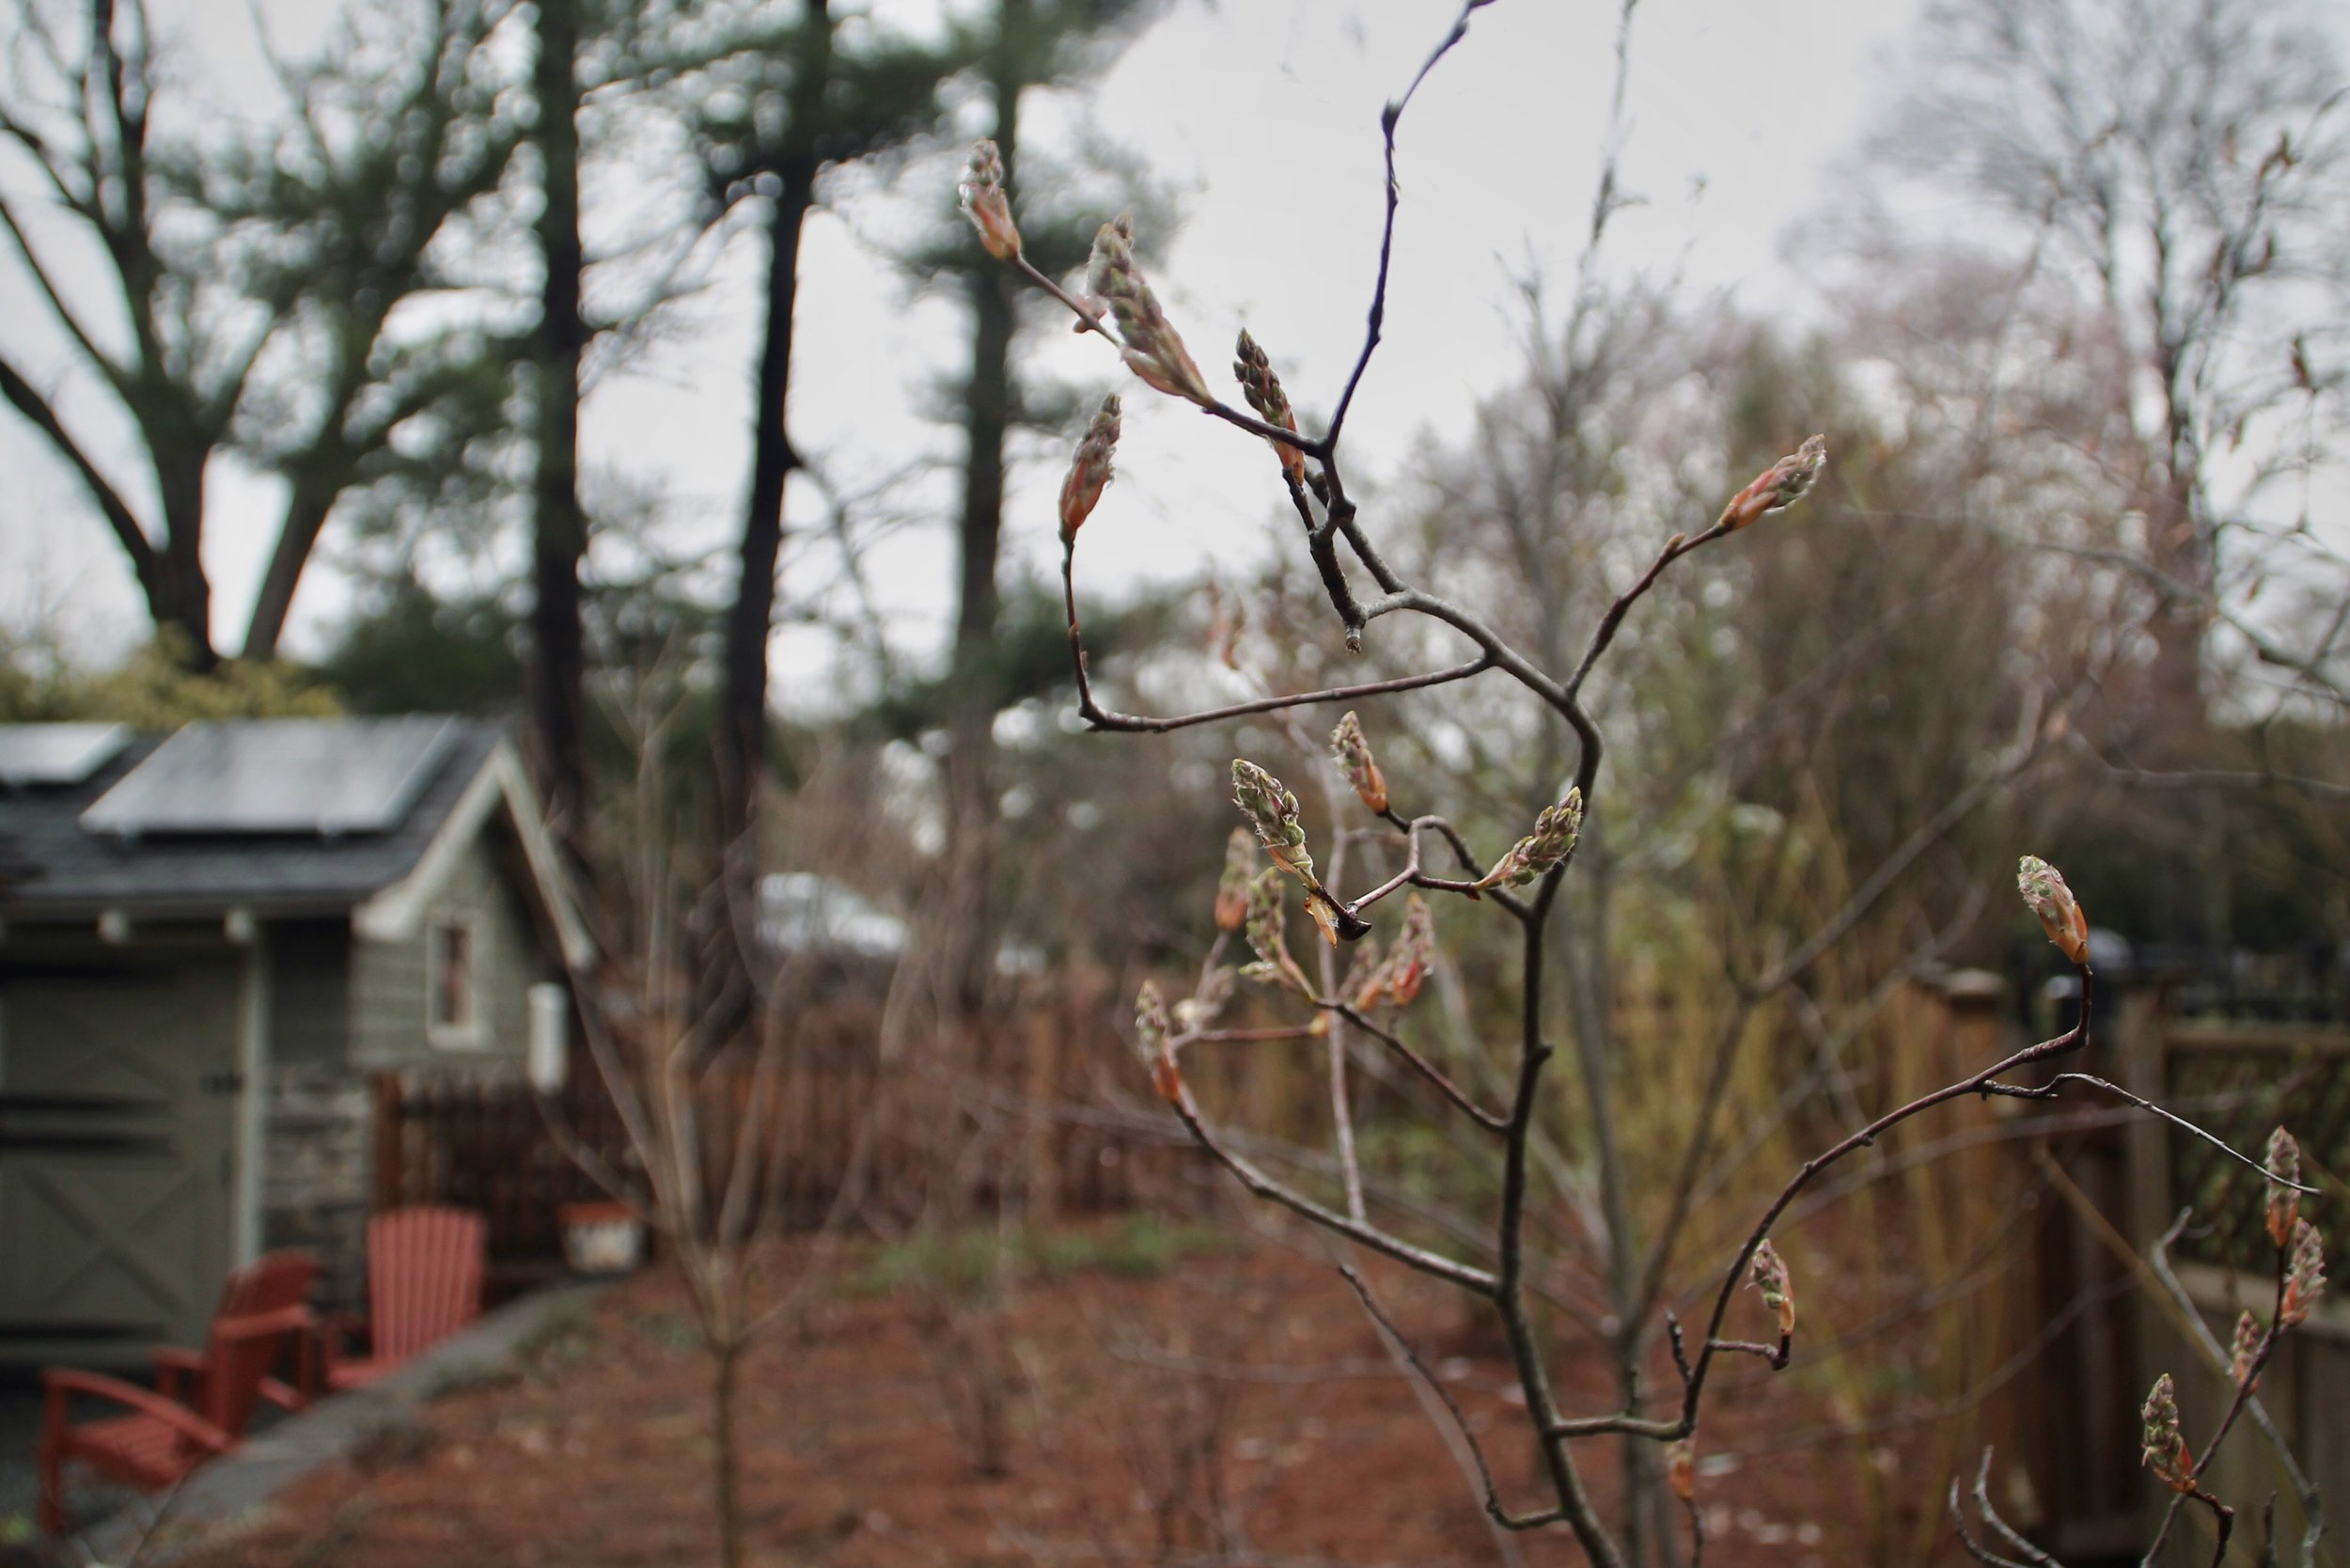 This week's rain has brought out the buds on a serviceberry ( Amelanchier laevis ) which sits just next to a gravel patio designed for permeability and stormwater absorption, and solar panels to reduce this home's reliance on fossil fuels.